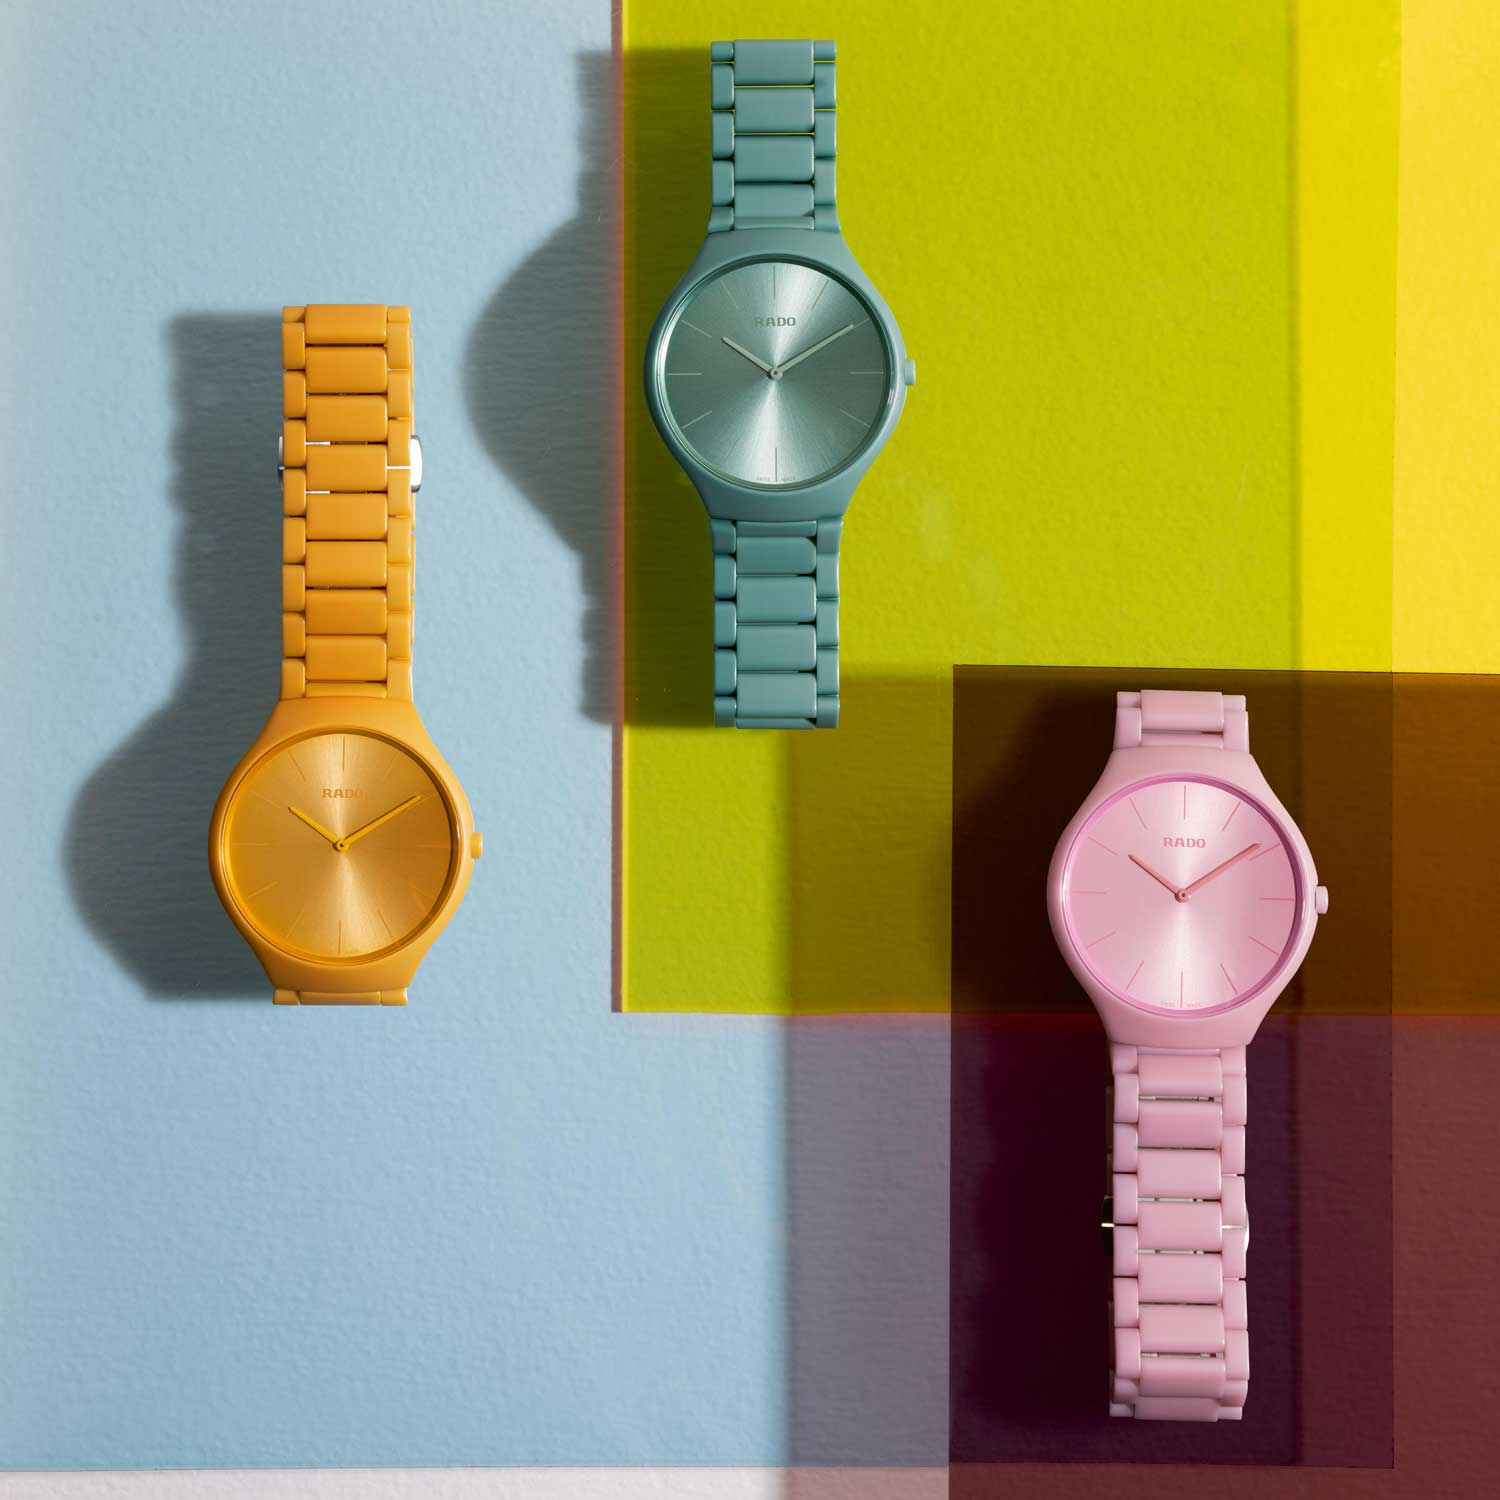 Rado True Thinline Les CouleursTM Le Corbusier Sunshine Yellow 4320W, Slightly Greyed English Green 32041, and Luminous Pink 4320C (Image © Revolution)